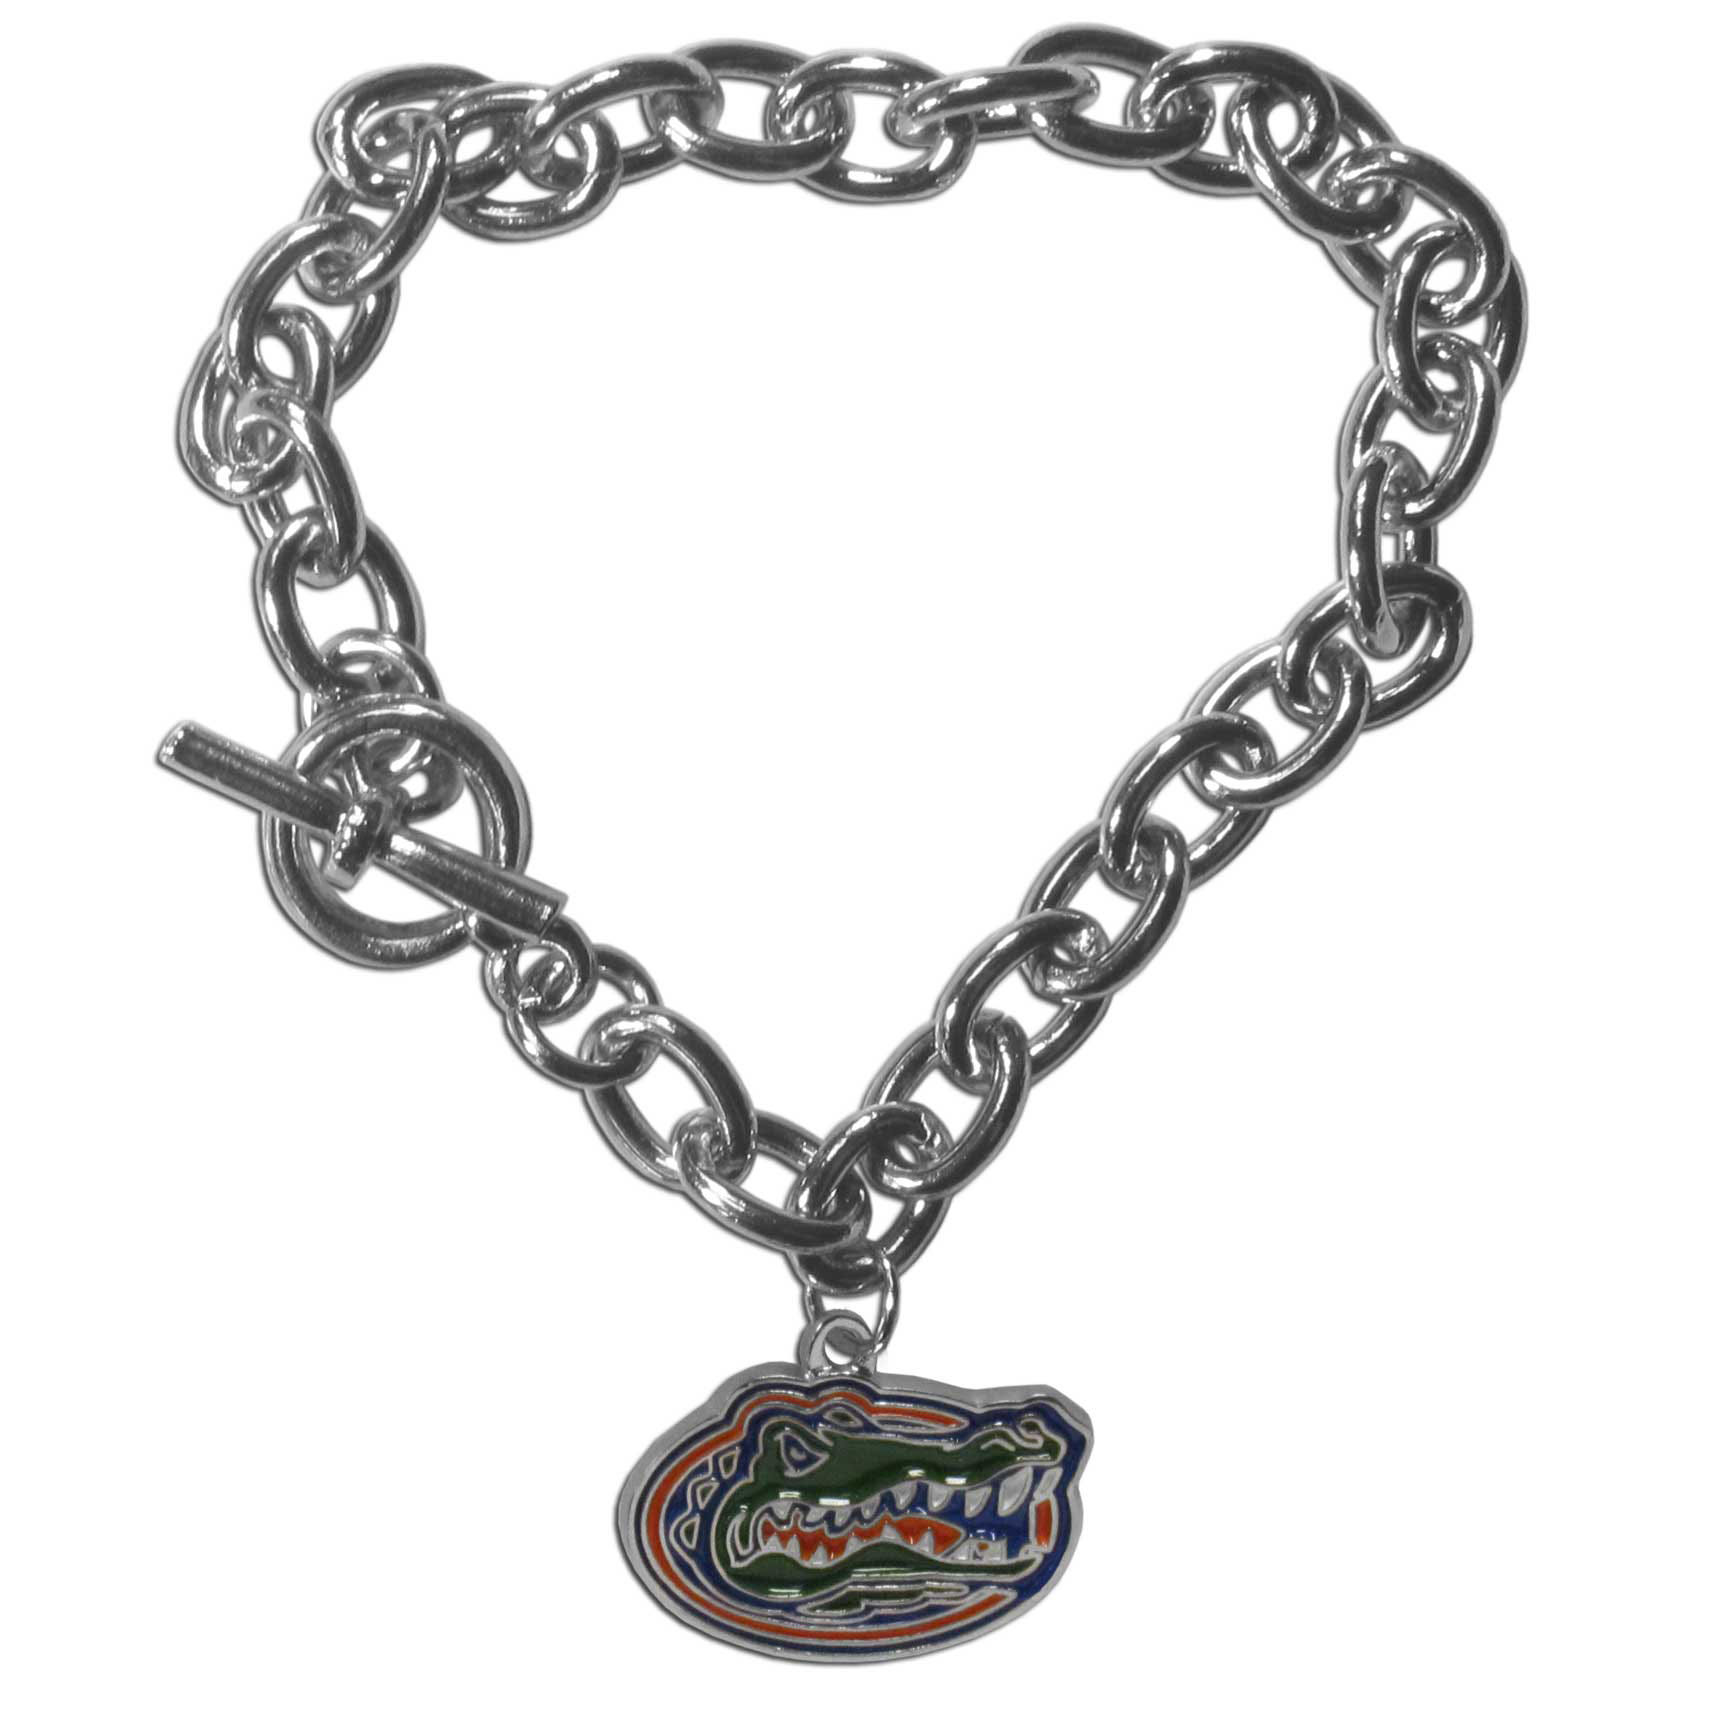 Florida Gators Charm Chain Bracelet - Our classic single charm bracelet is a great way to show off your team pride! The 7.5 inch large link chain features a high polish Florida Gators charm and features a toggle clasp which makes it super easy to take on and off.